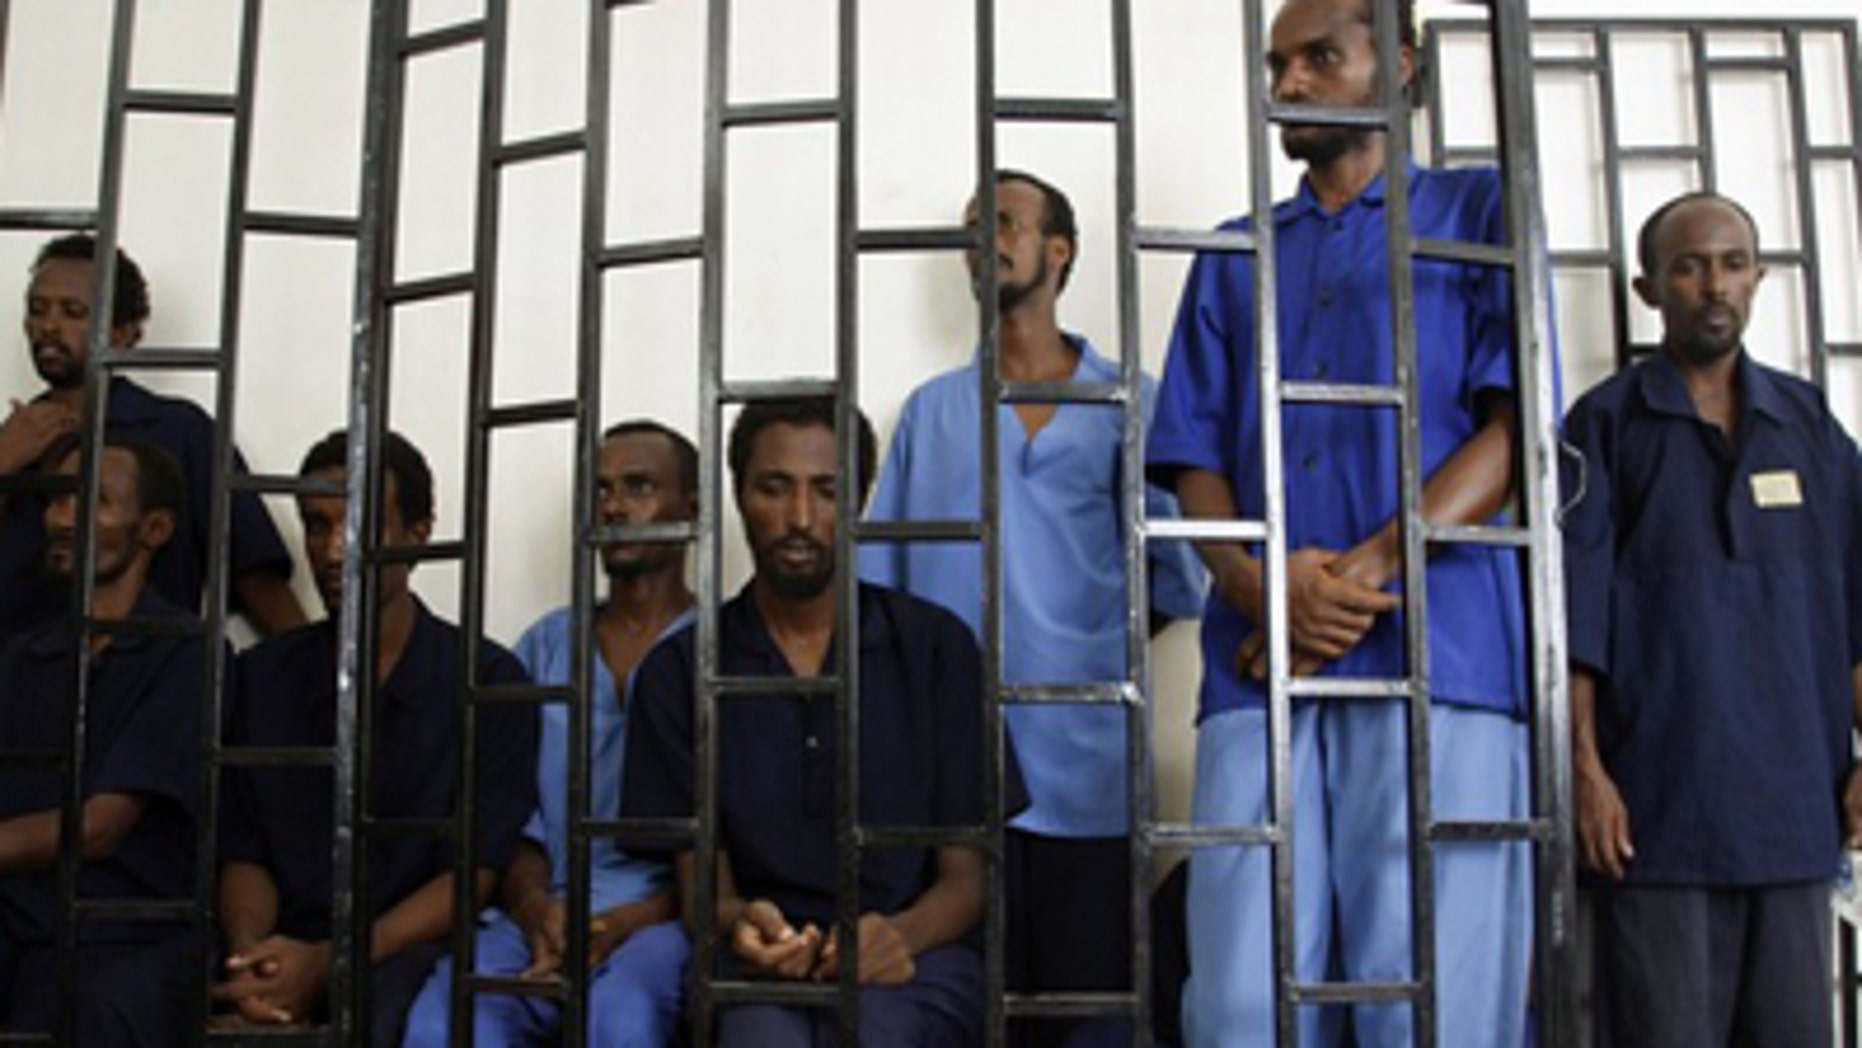 July 15, 2009: Suspected Somali pirates appear behind bars of a court in Yemen's southern port city of Aden. Worldwide piracy figures have reached a five-year low, according to the International Maritime Bureau. (Reuters)